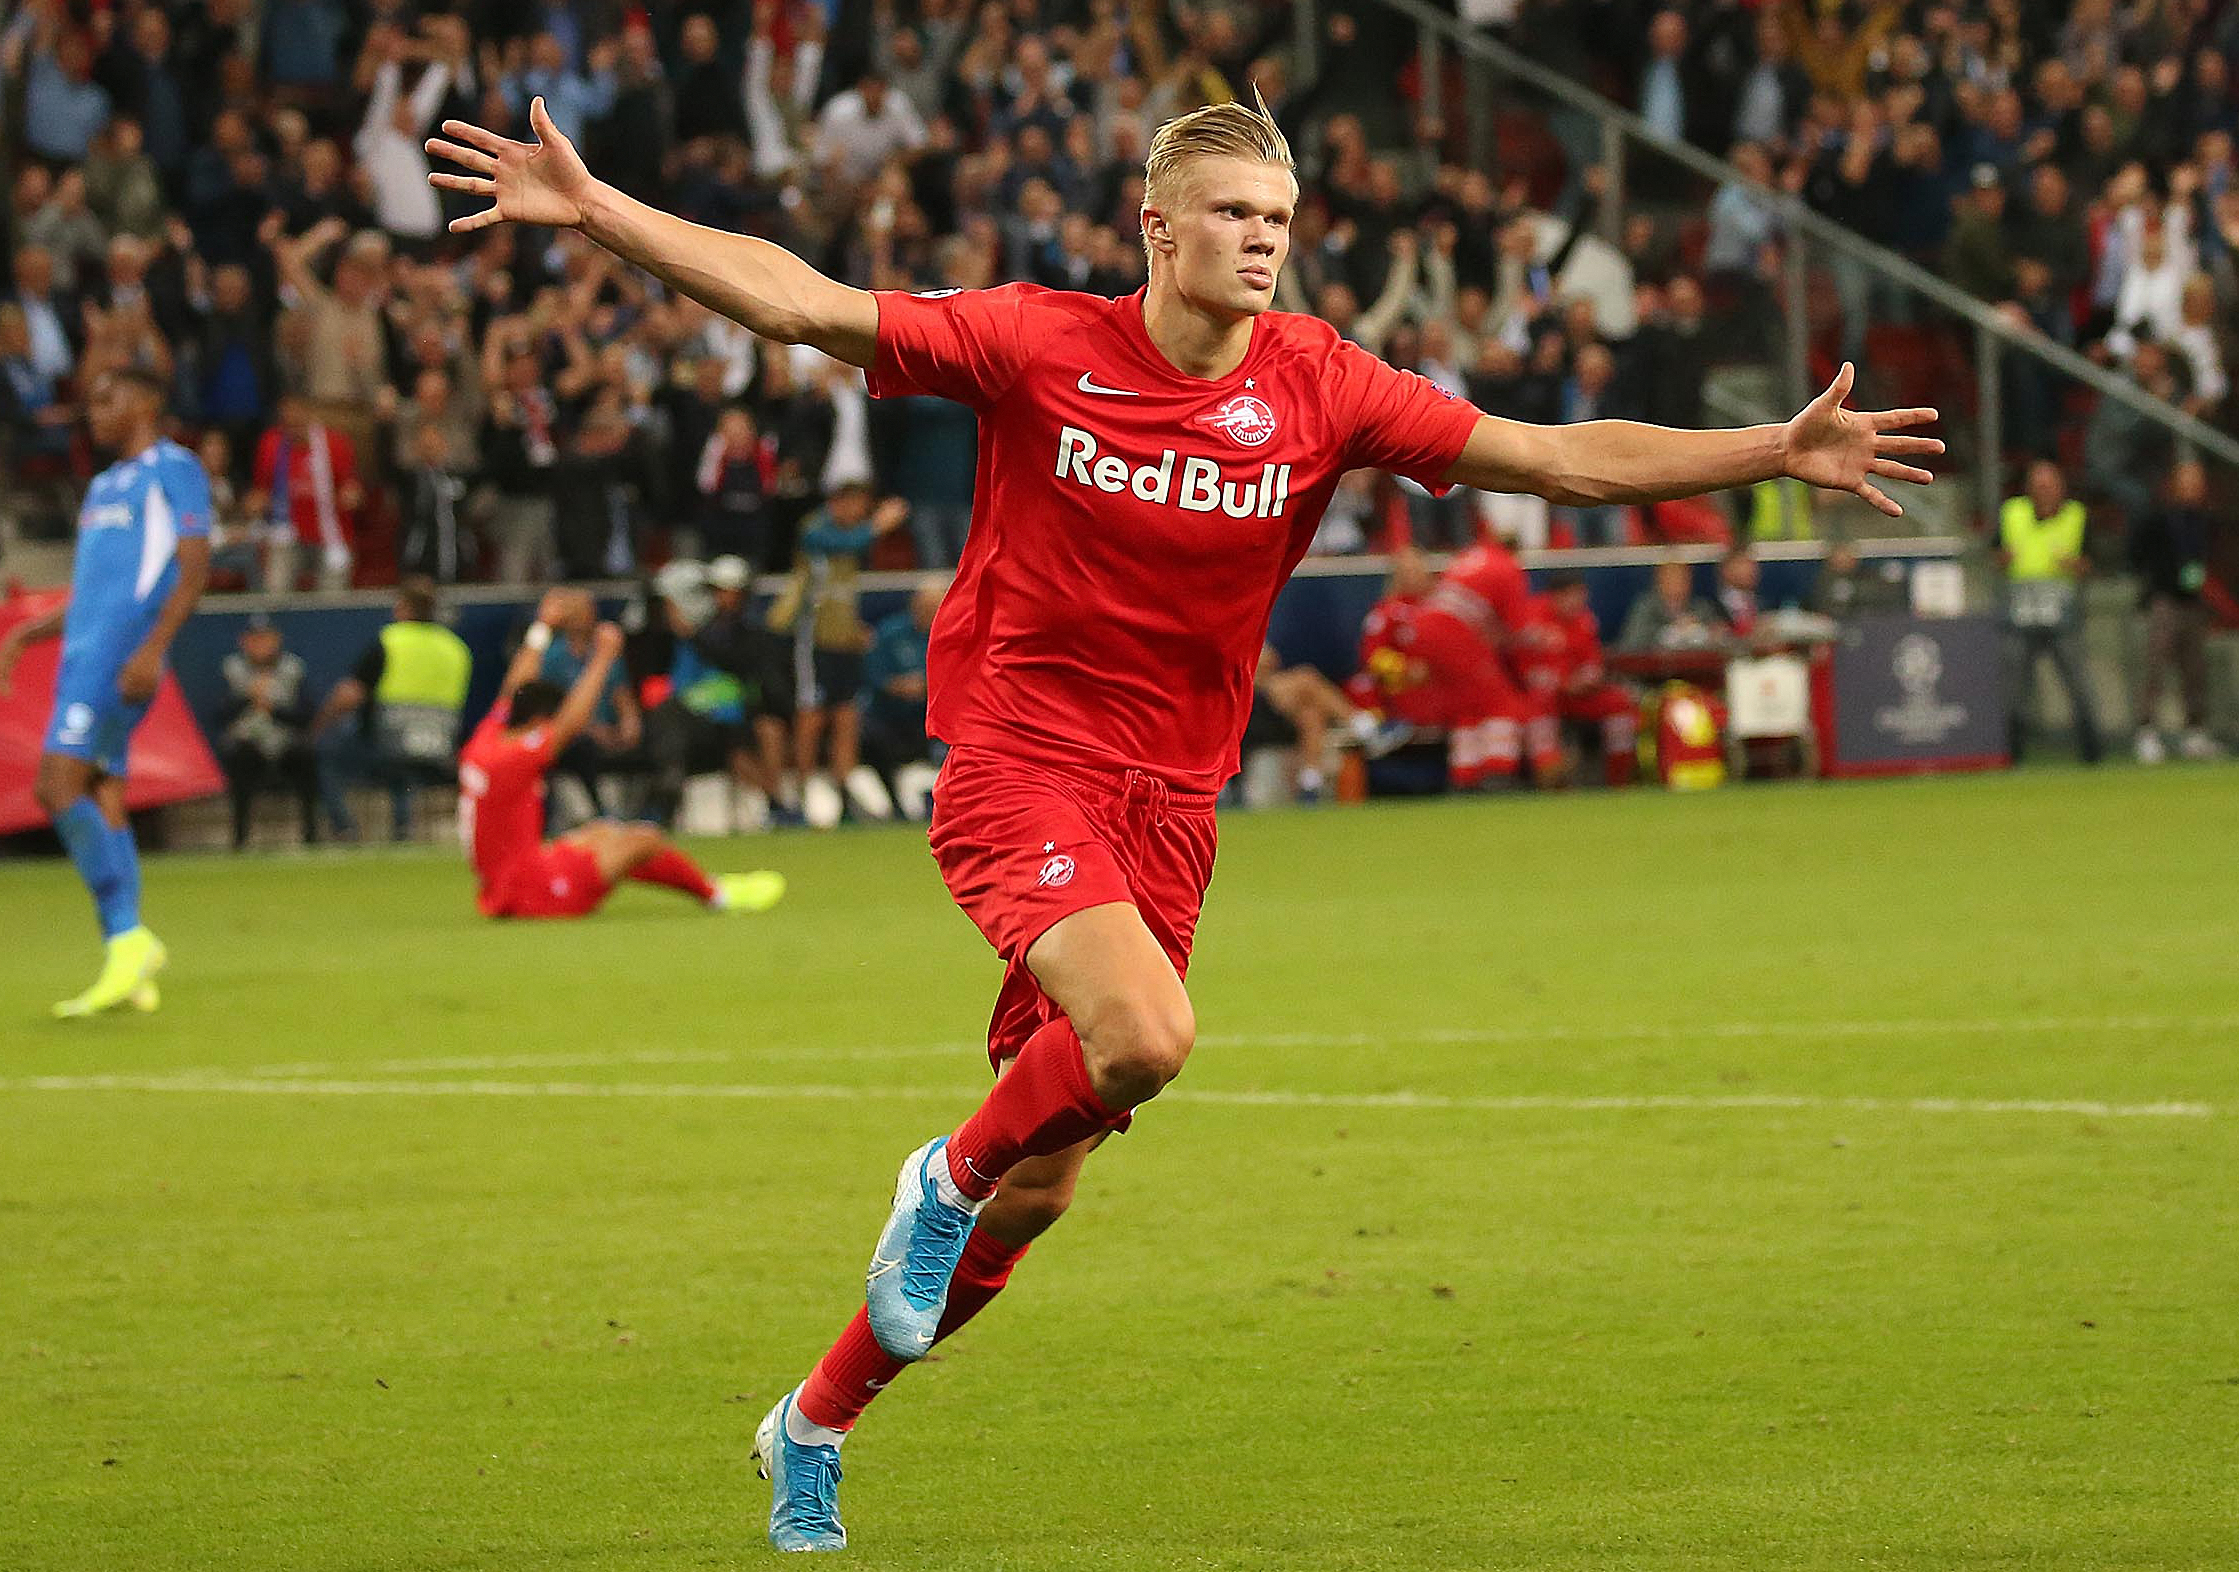 Erling Braut Haland scored a first half hat-trick in his side's 6-2 win over Genk.